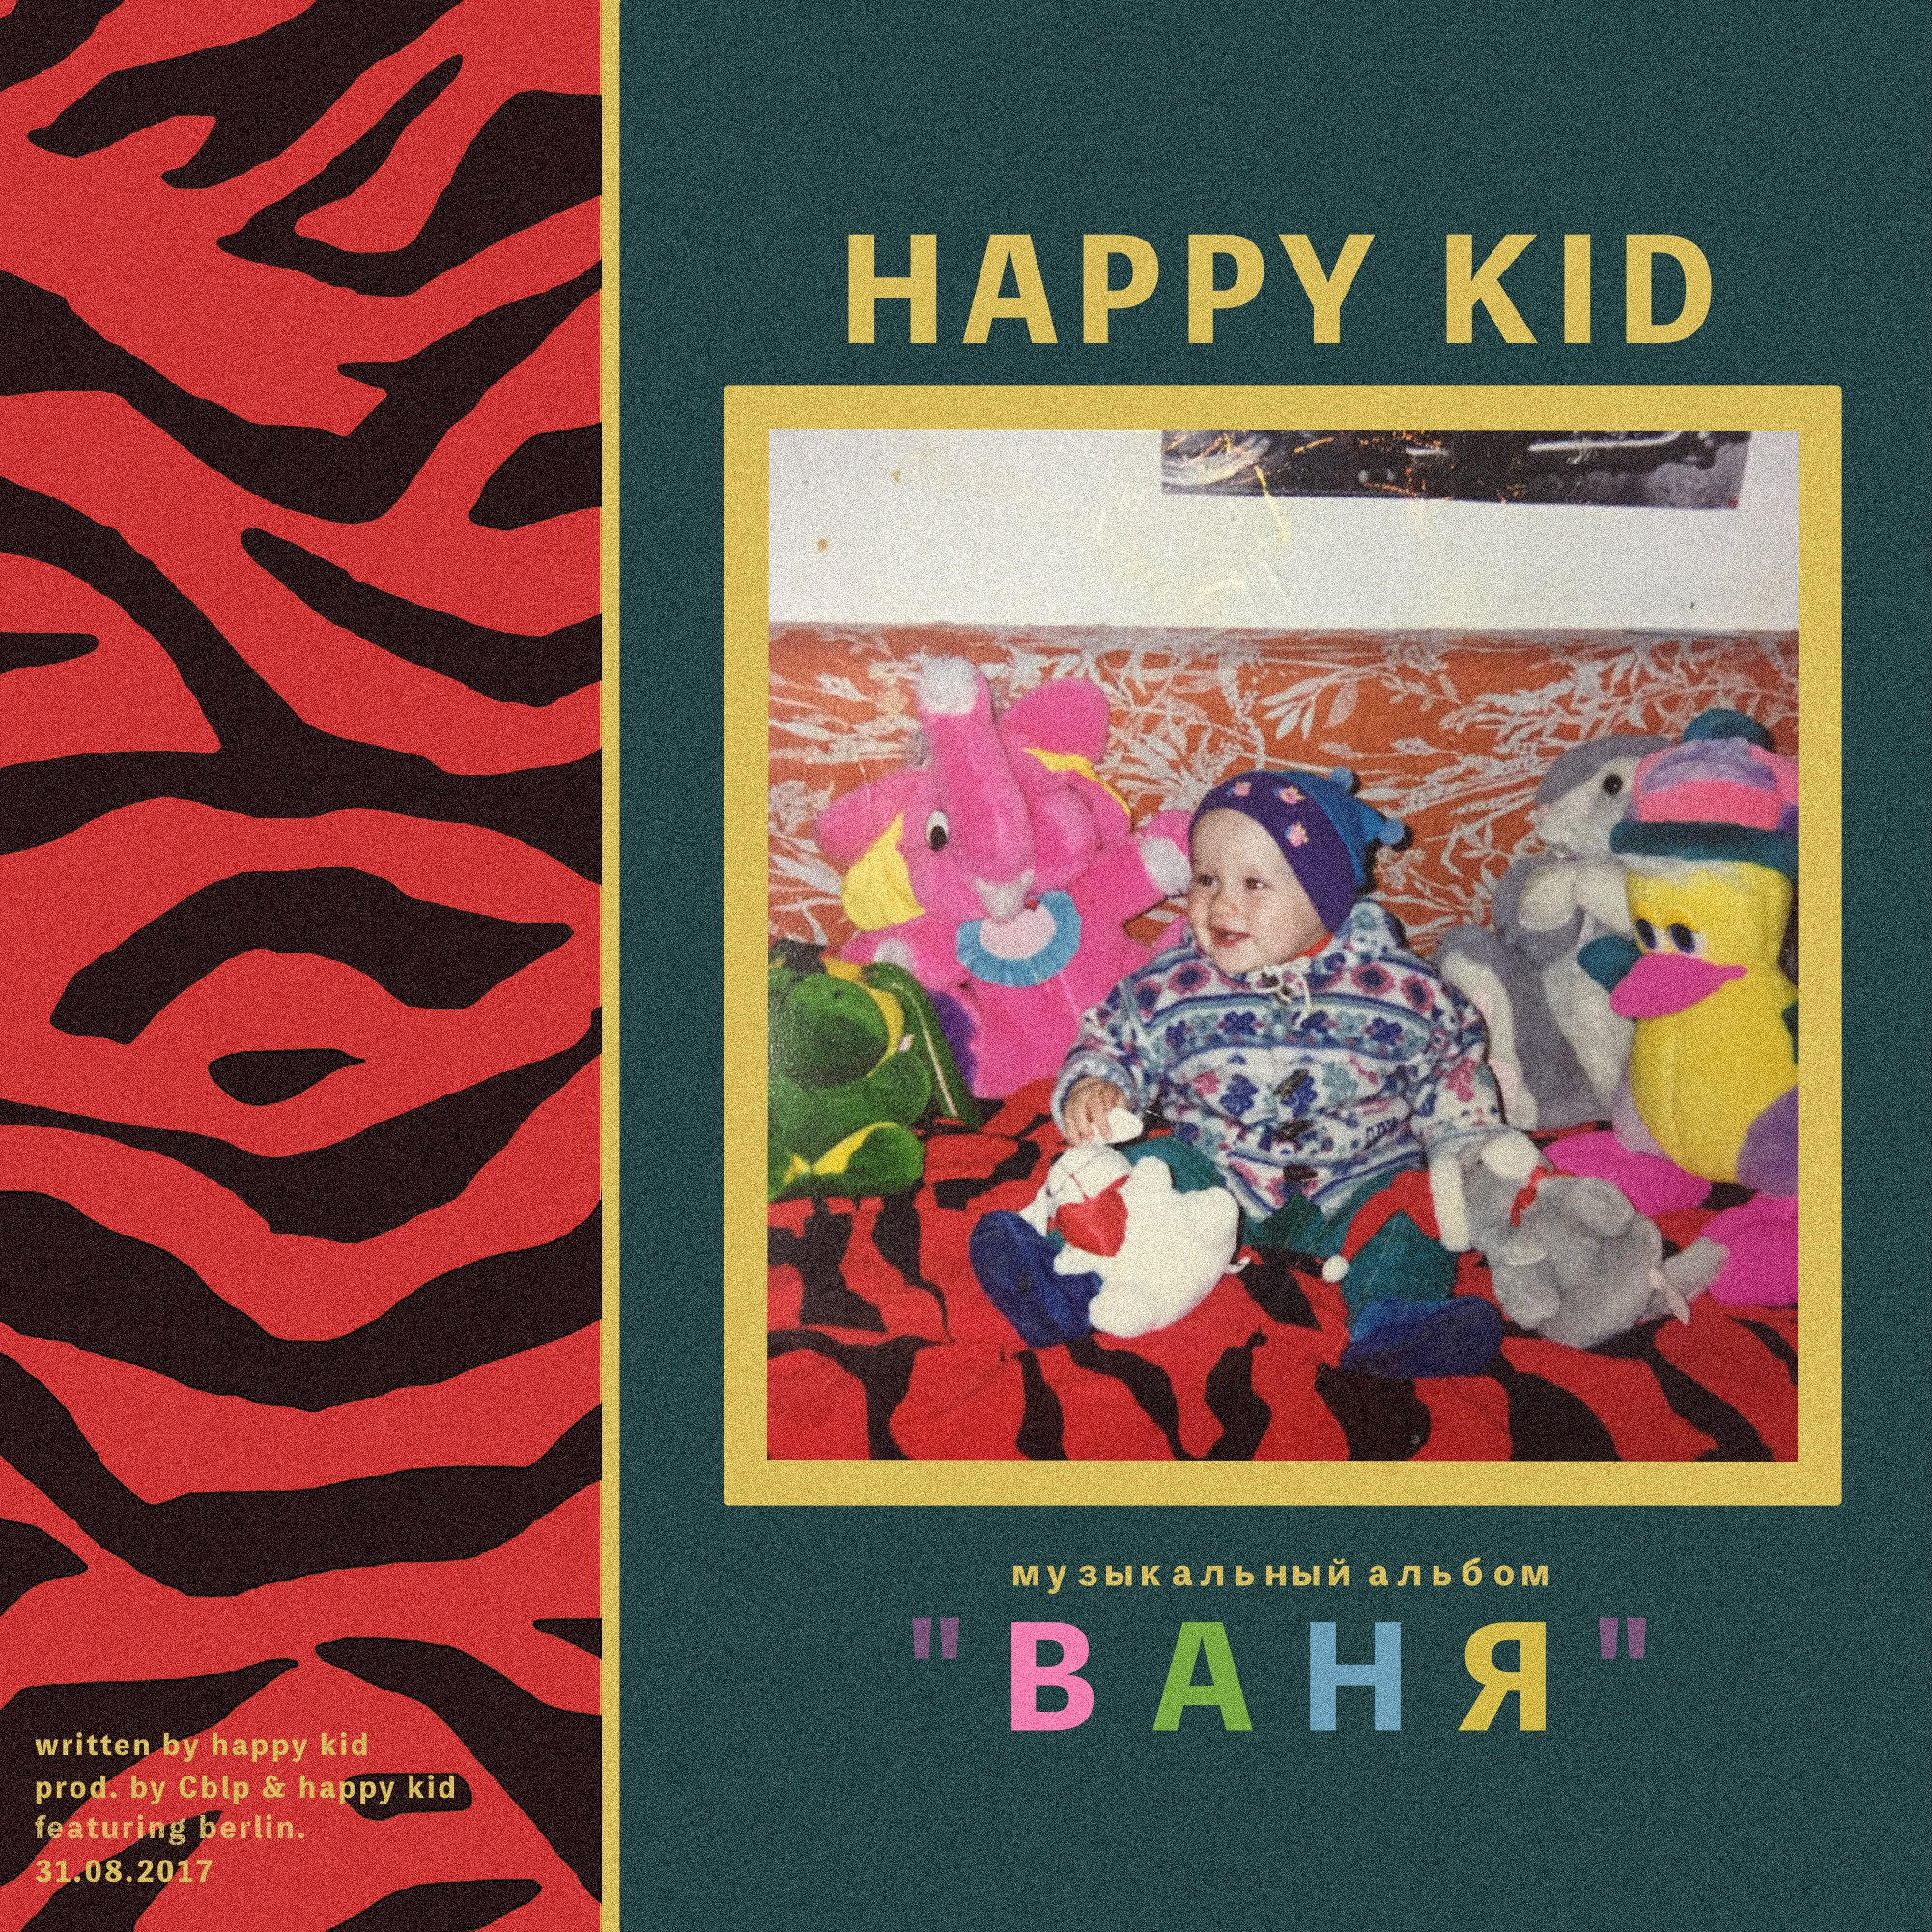 happy kid — Ваня